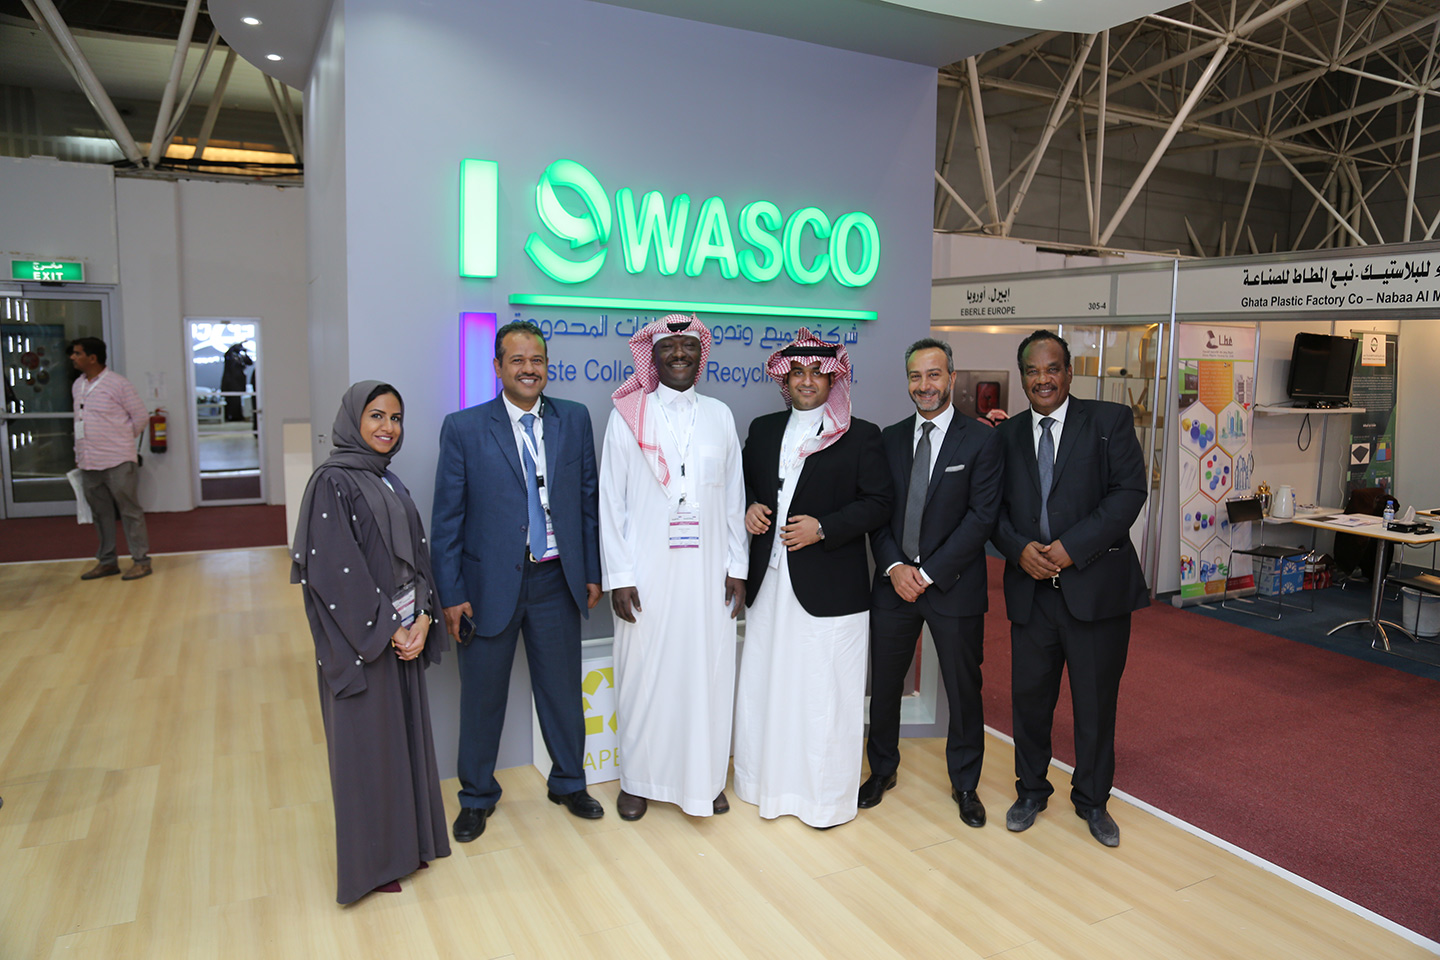 MEPCO and WASCO Attend 15th Saudi PPPP 2018 Exhibition in Riyadh – Mepco